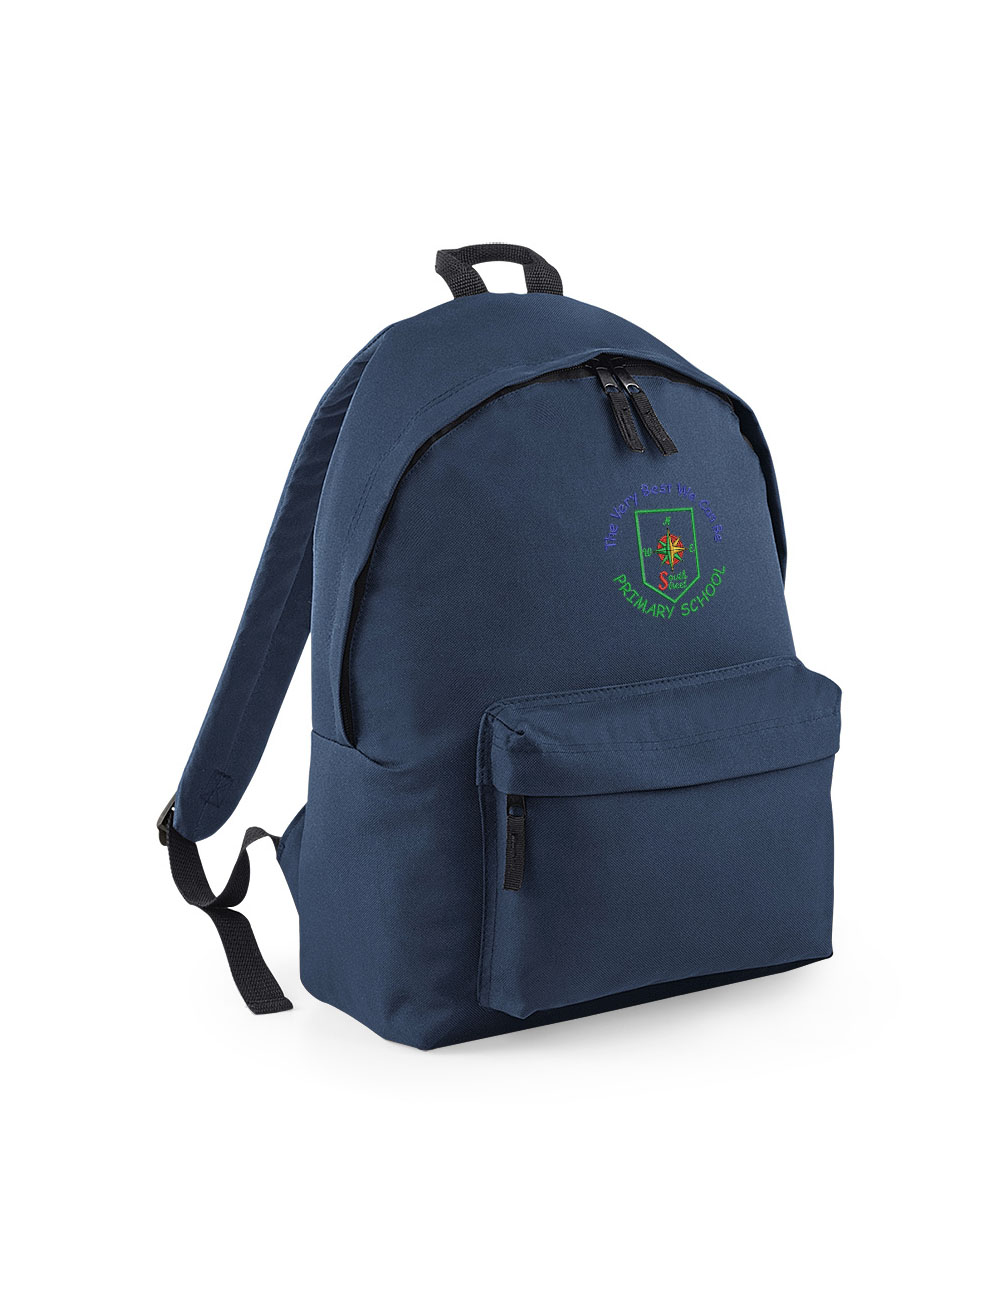 South Street BackPack